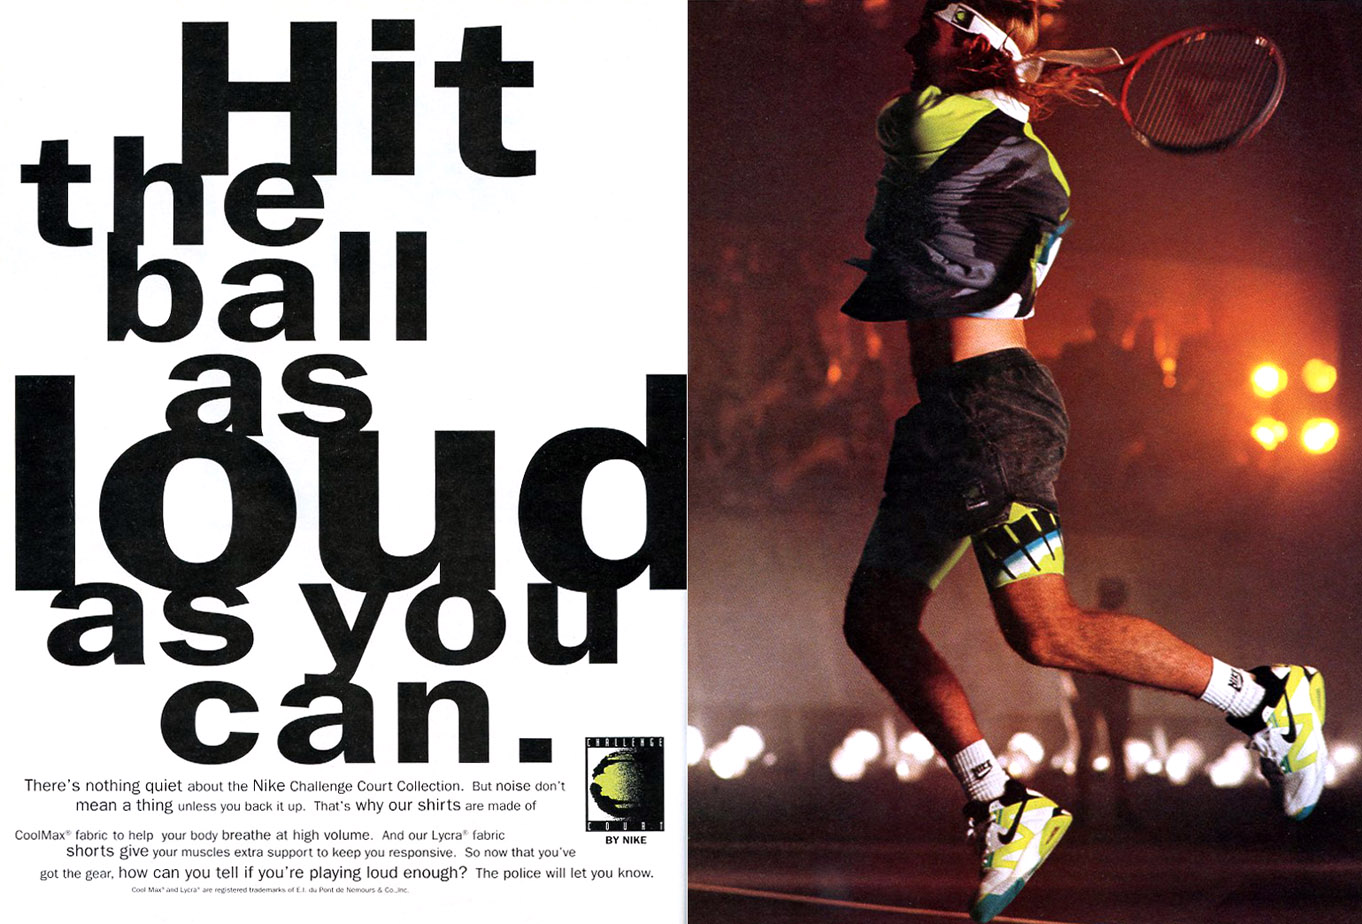 ae511cfd61e The Top 10 Vintage Ads on Sole Collector So Far